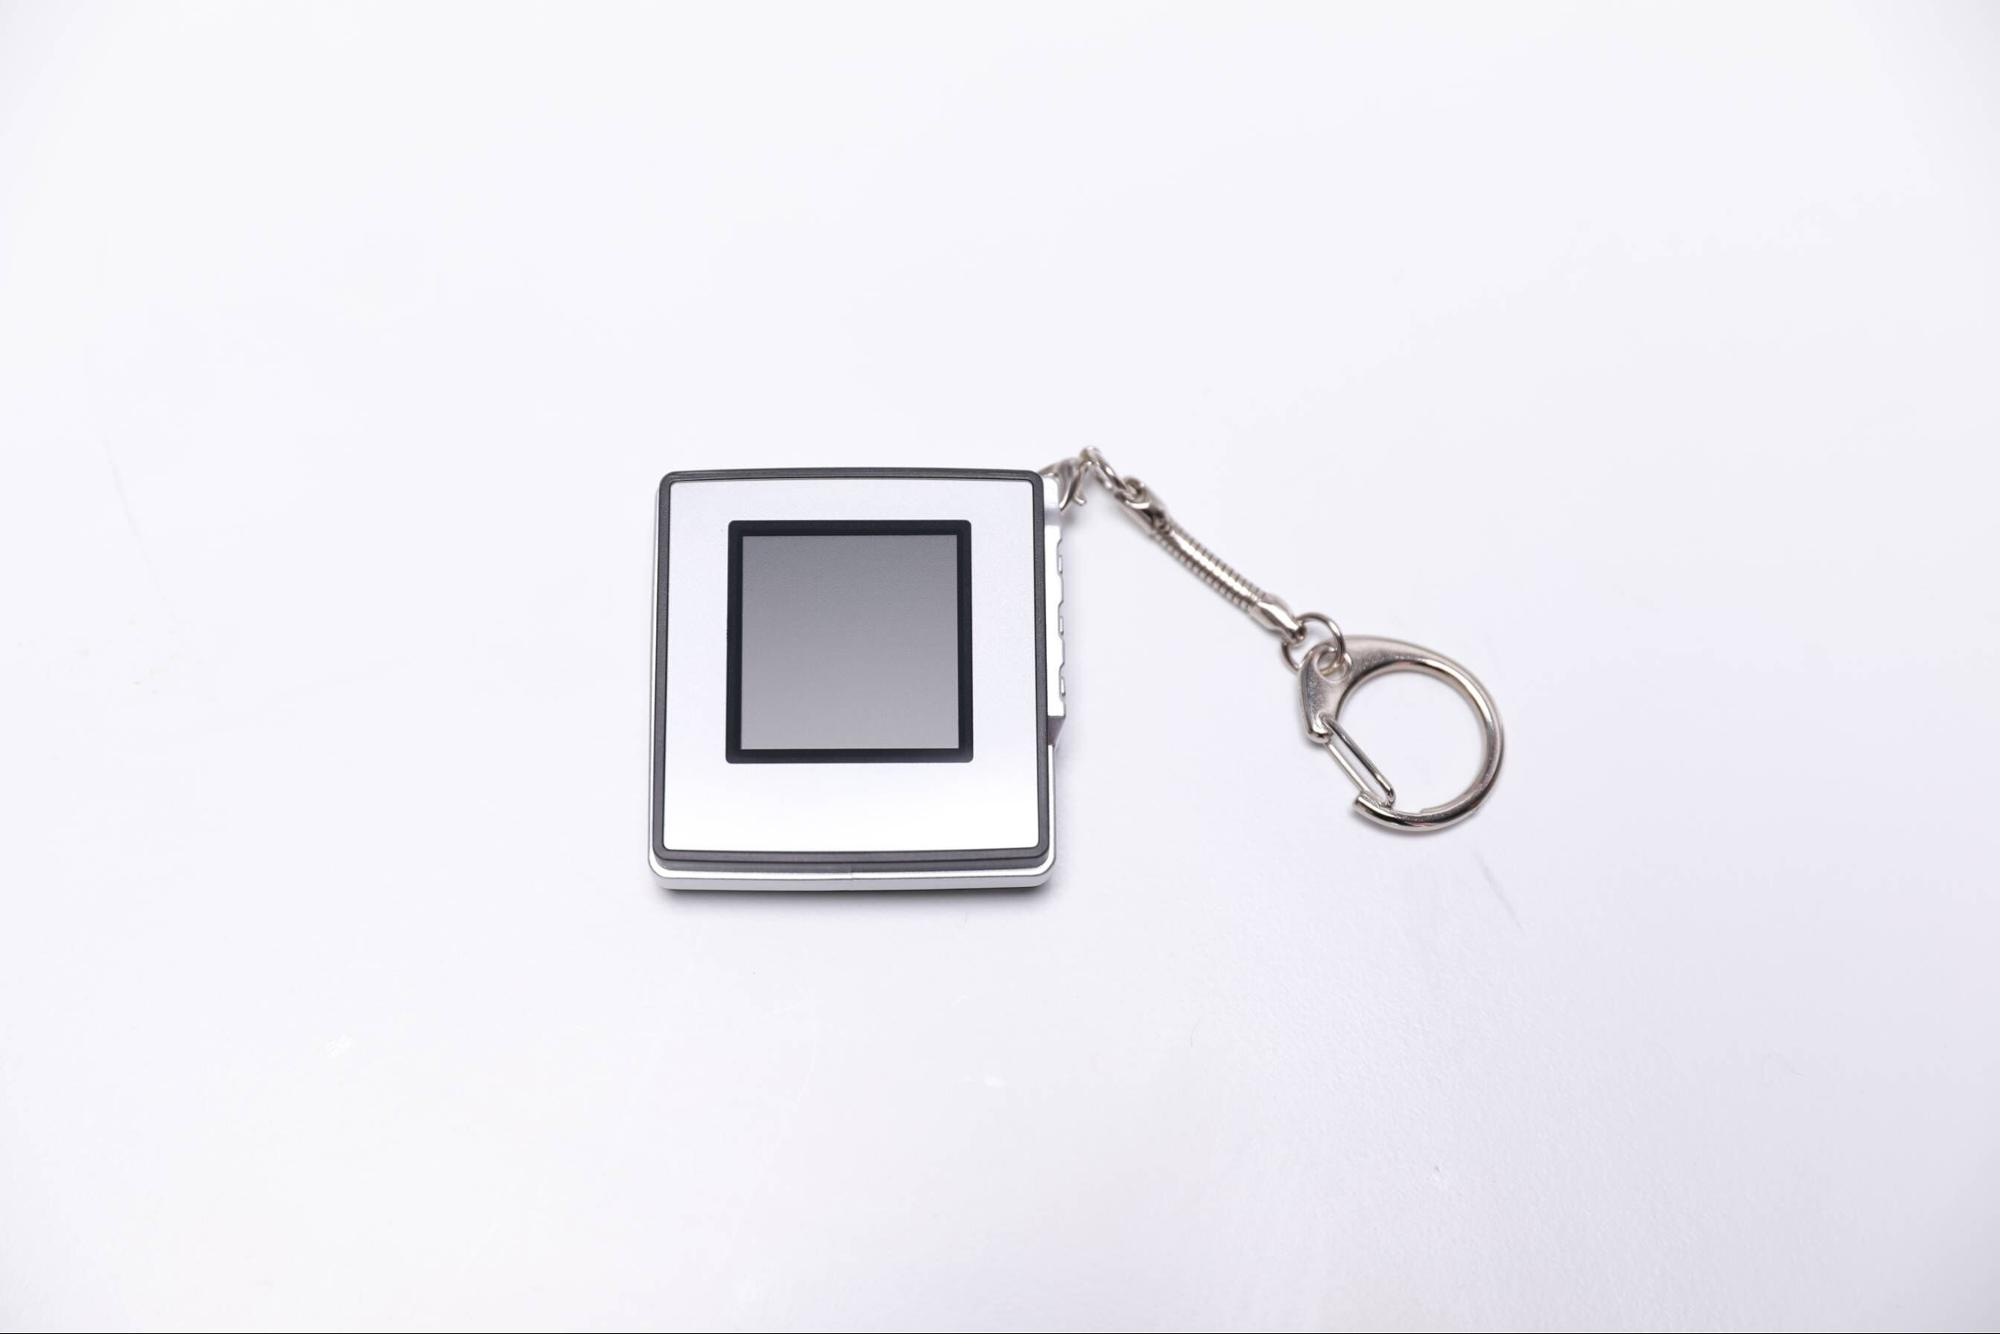 photo frame keychain 1.jpg